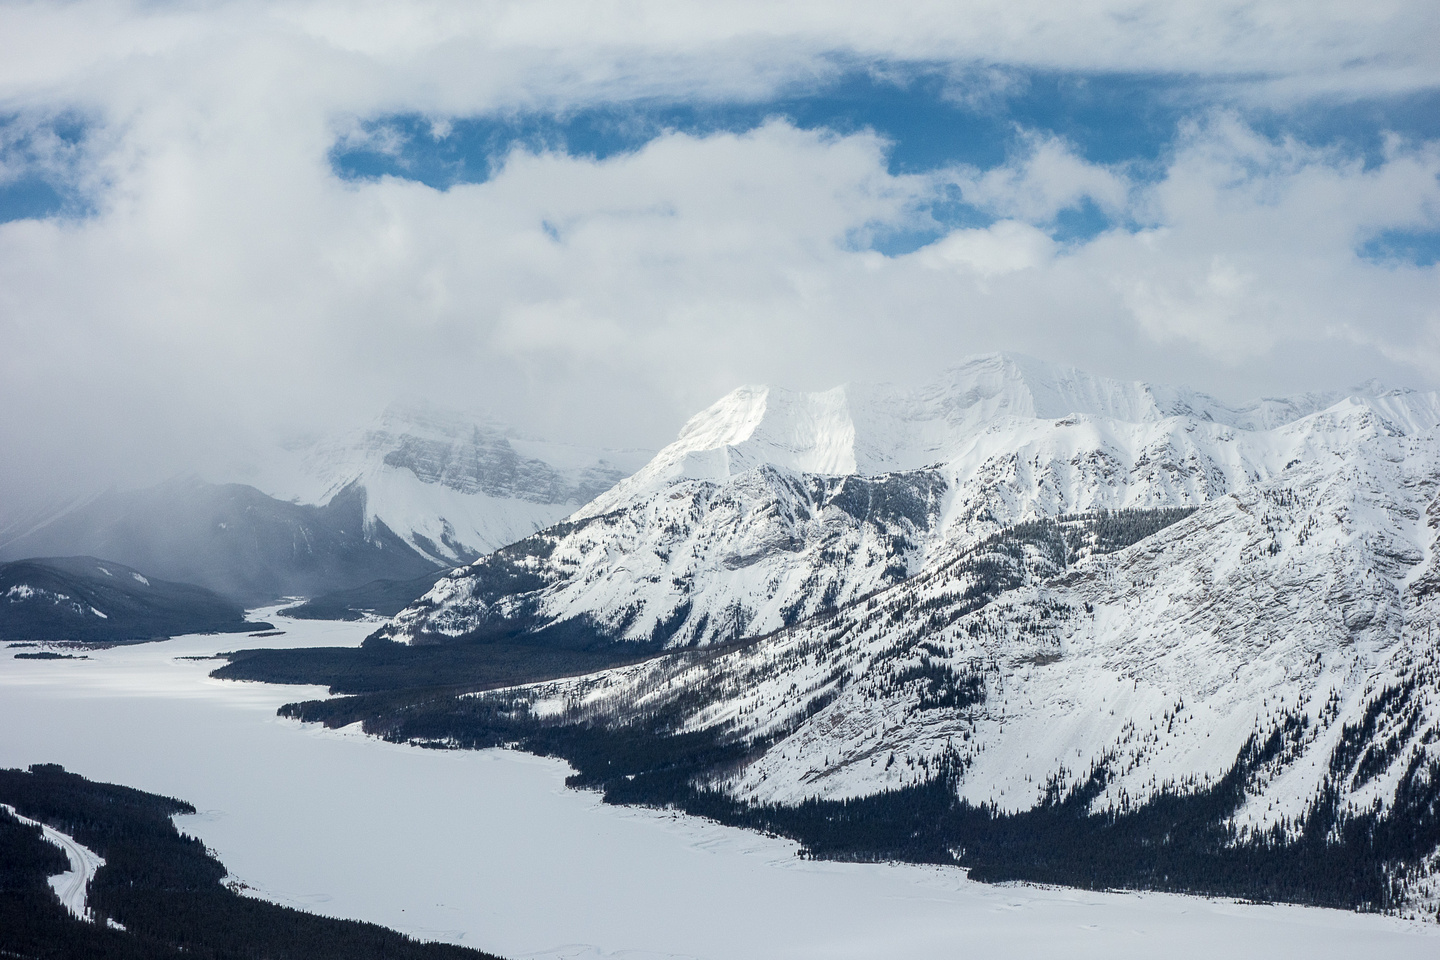 Looking over Mount Fortune and the south end of Spray Lakes.